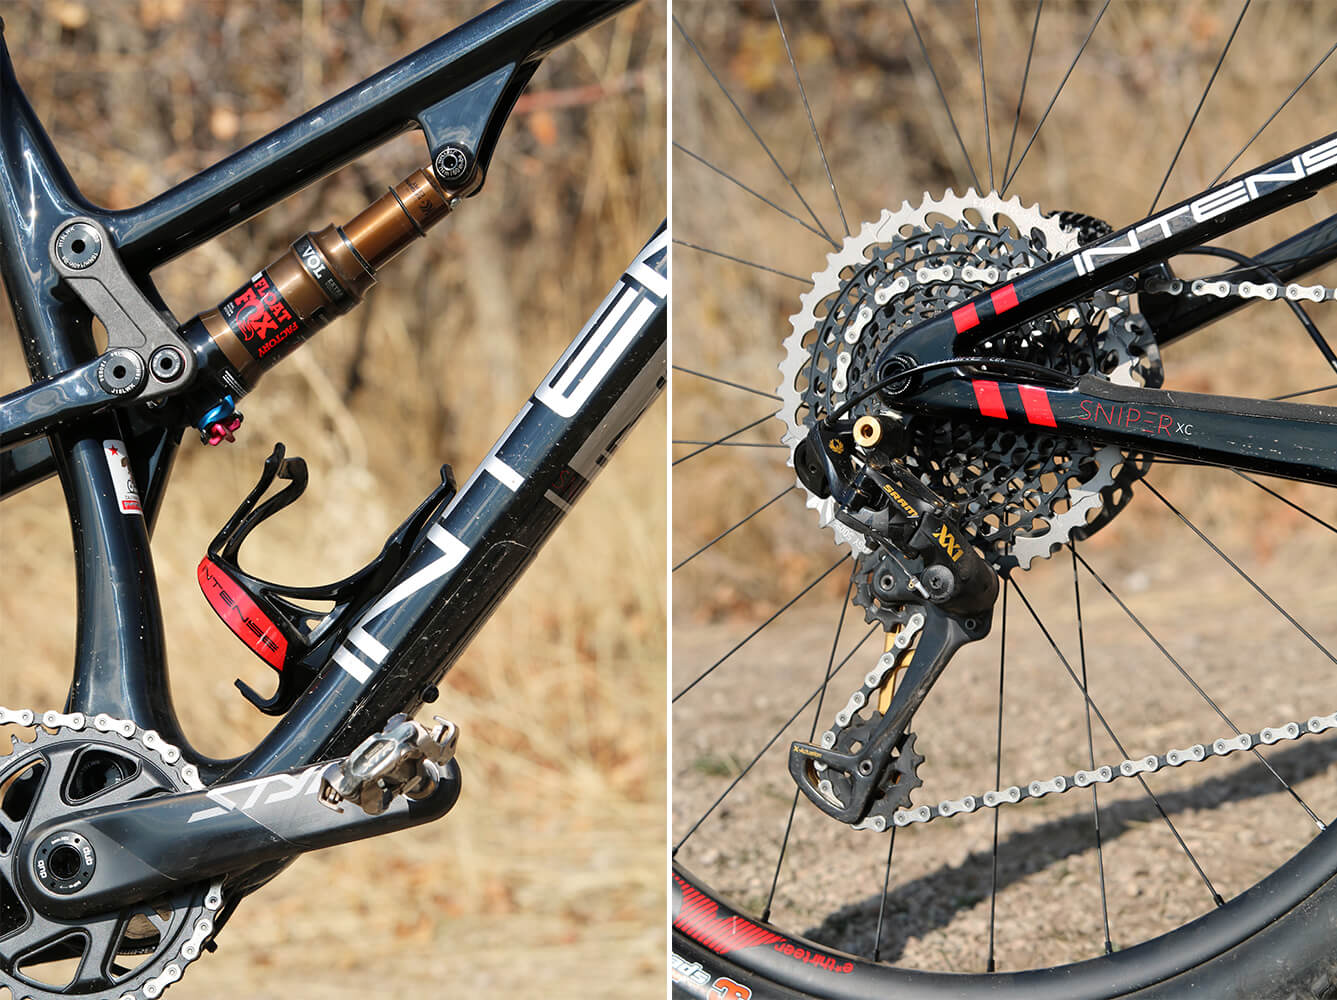 2020 Intense Sniper XC Detailing - Contender Bicycles